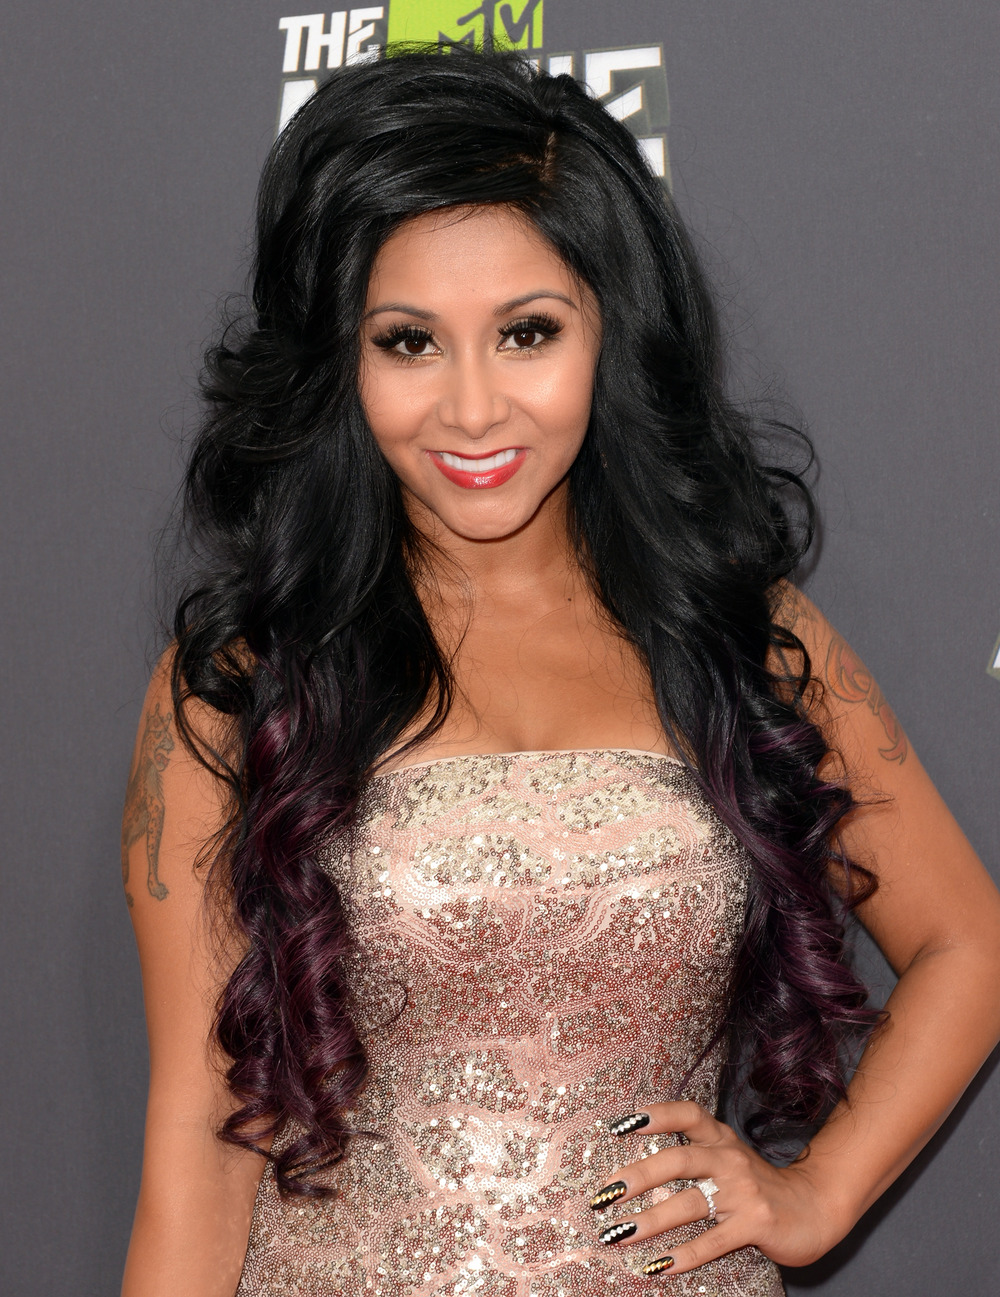 Snooki Stuns at 2013 MTV Movie Awards — Check Out Her Glittering Gown! (PHOTOS)